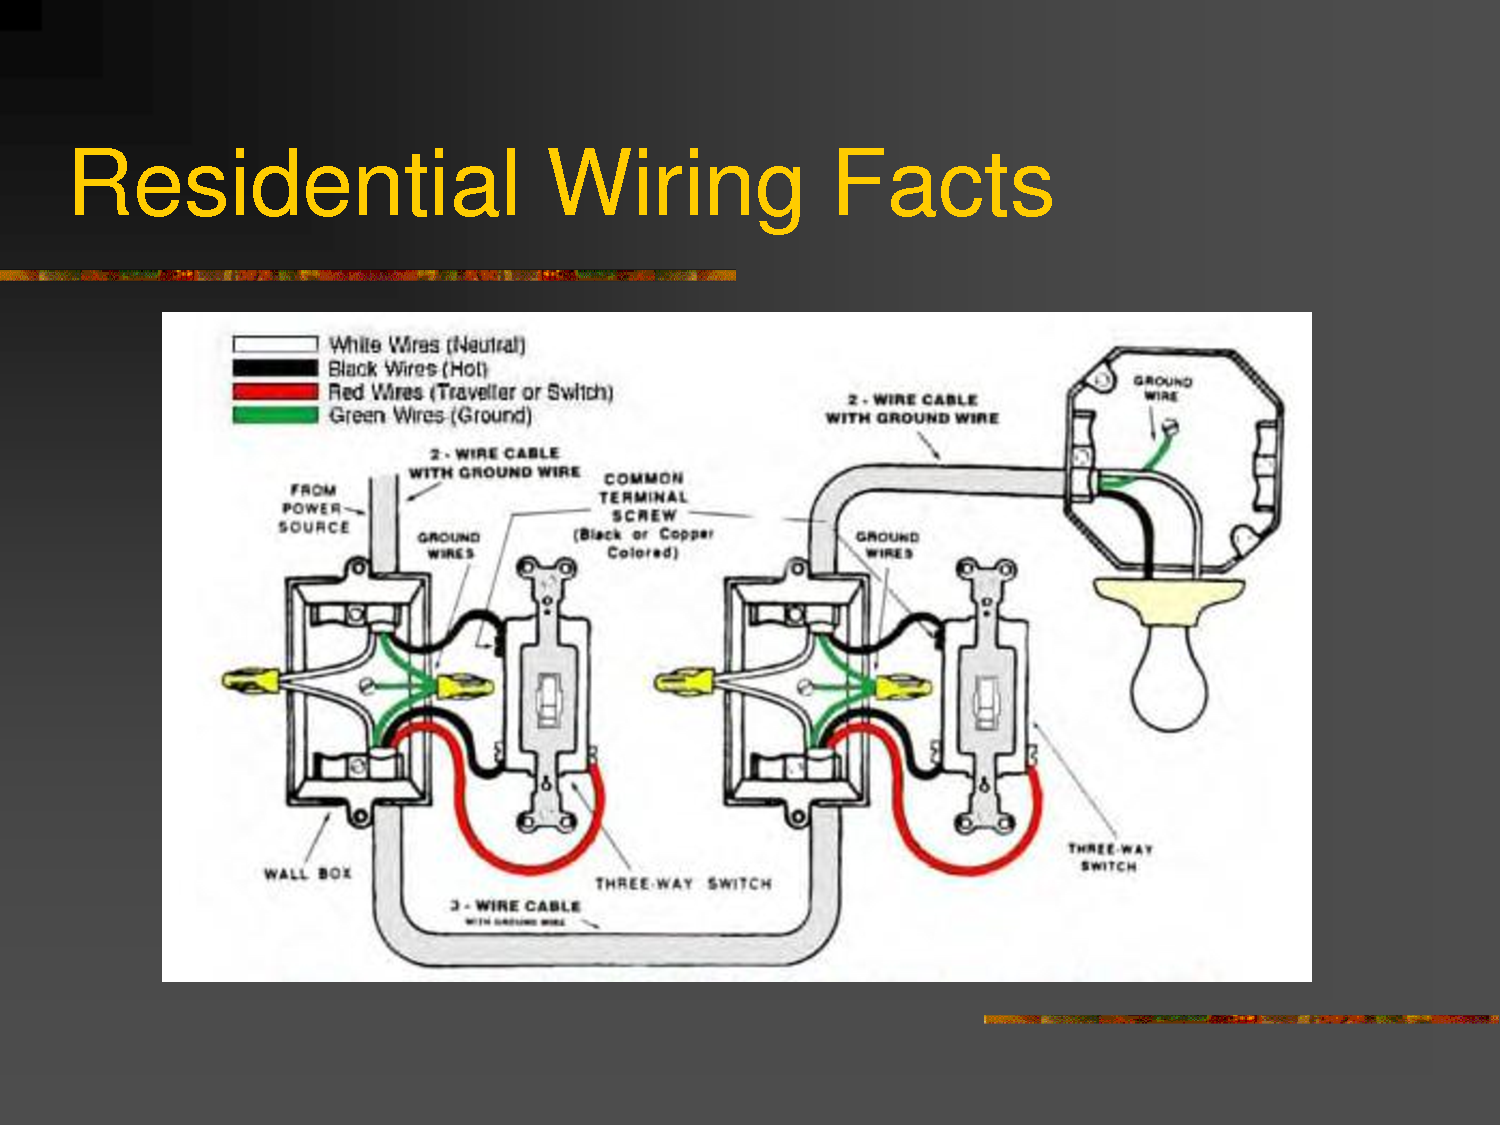 4 Best Images Of Residential Wiring Diagrams House Electrical Grounding Plan